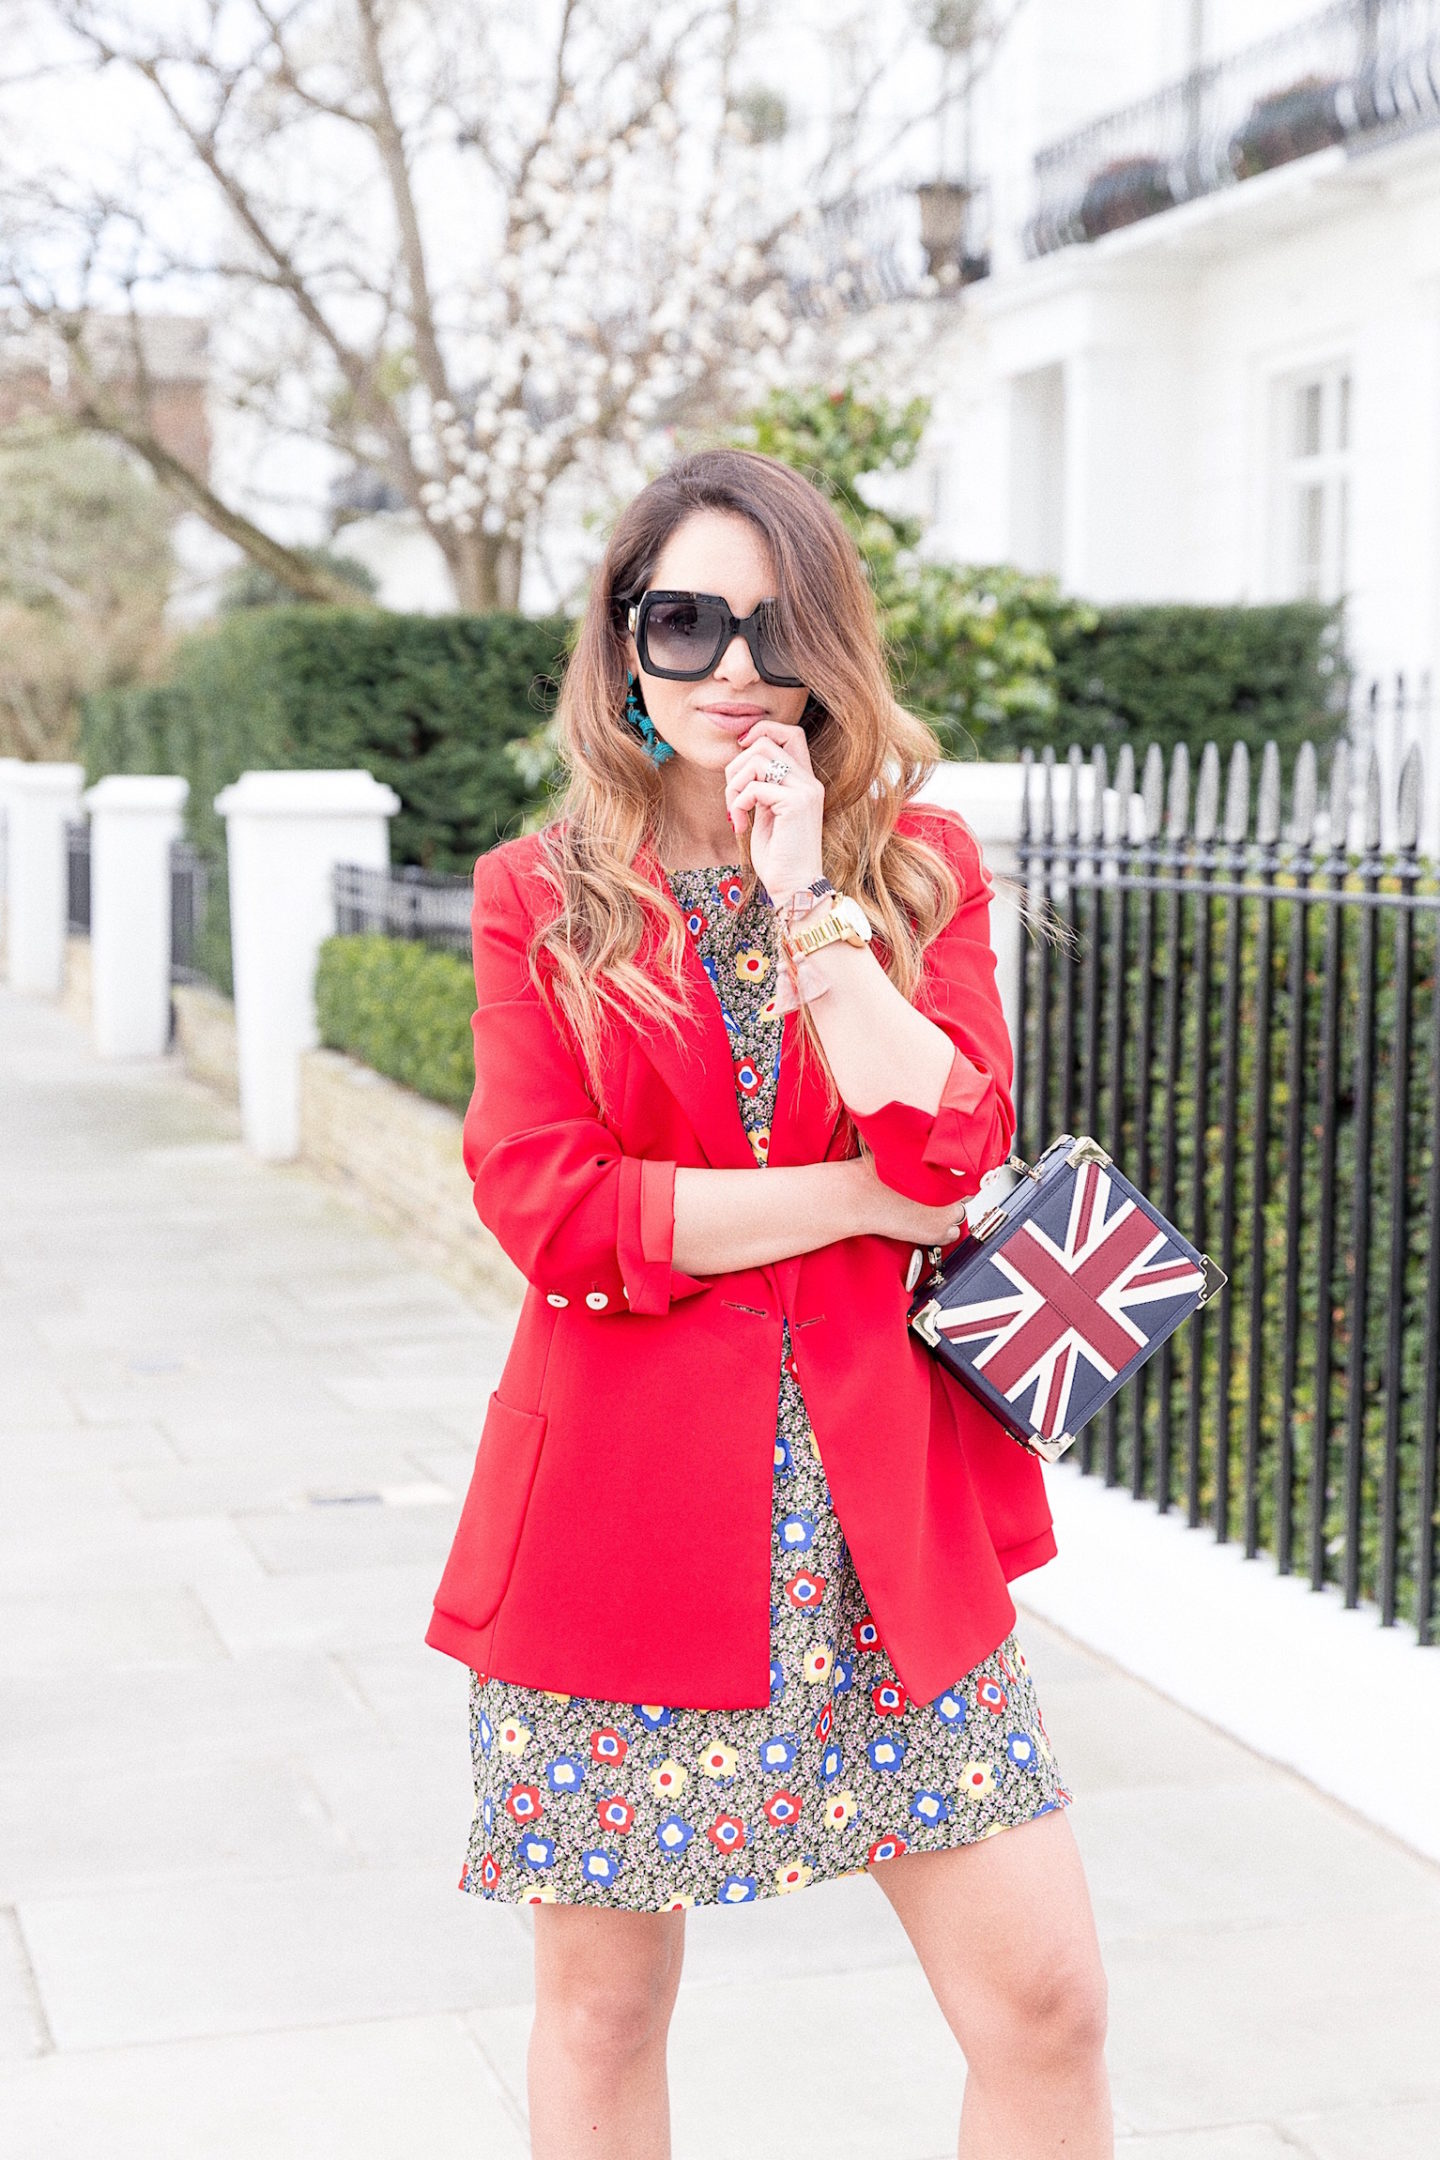 zara street style spring season london